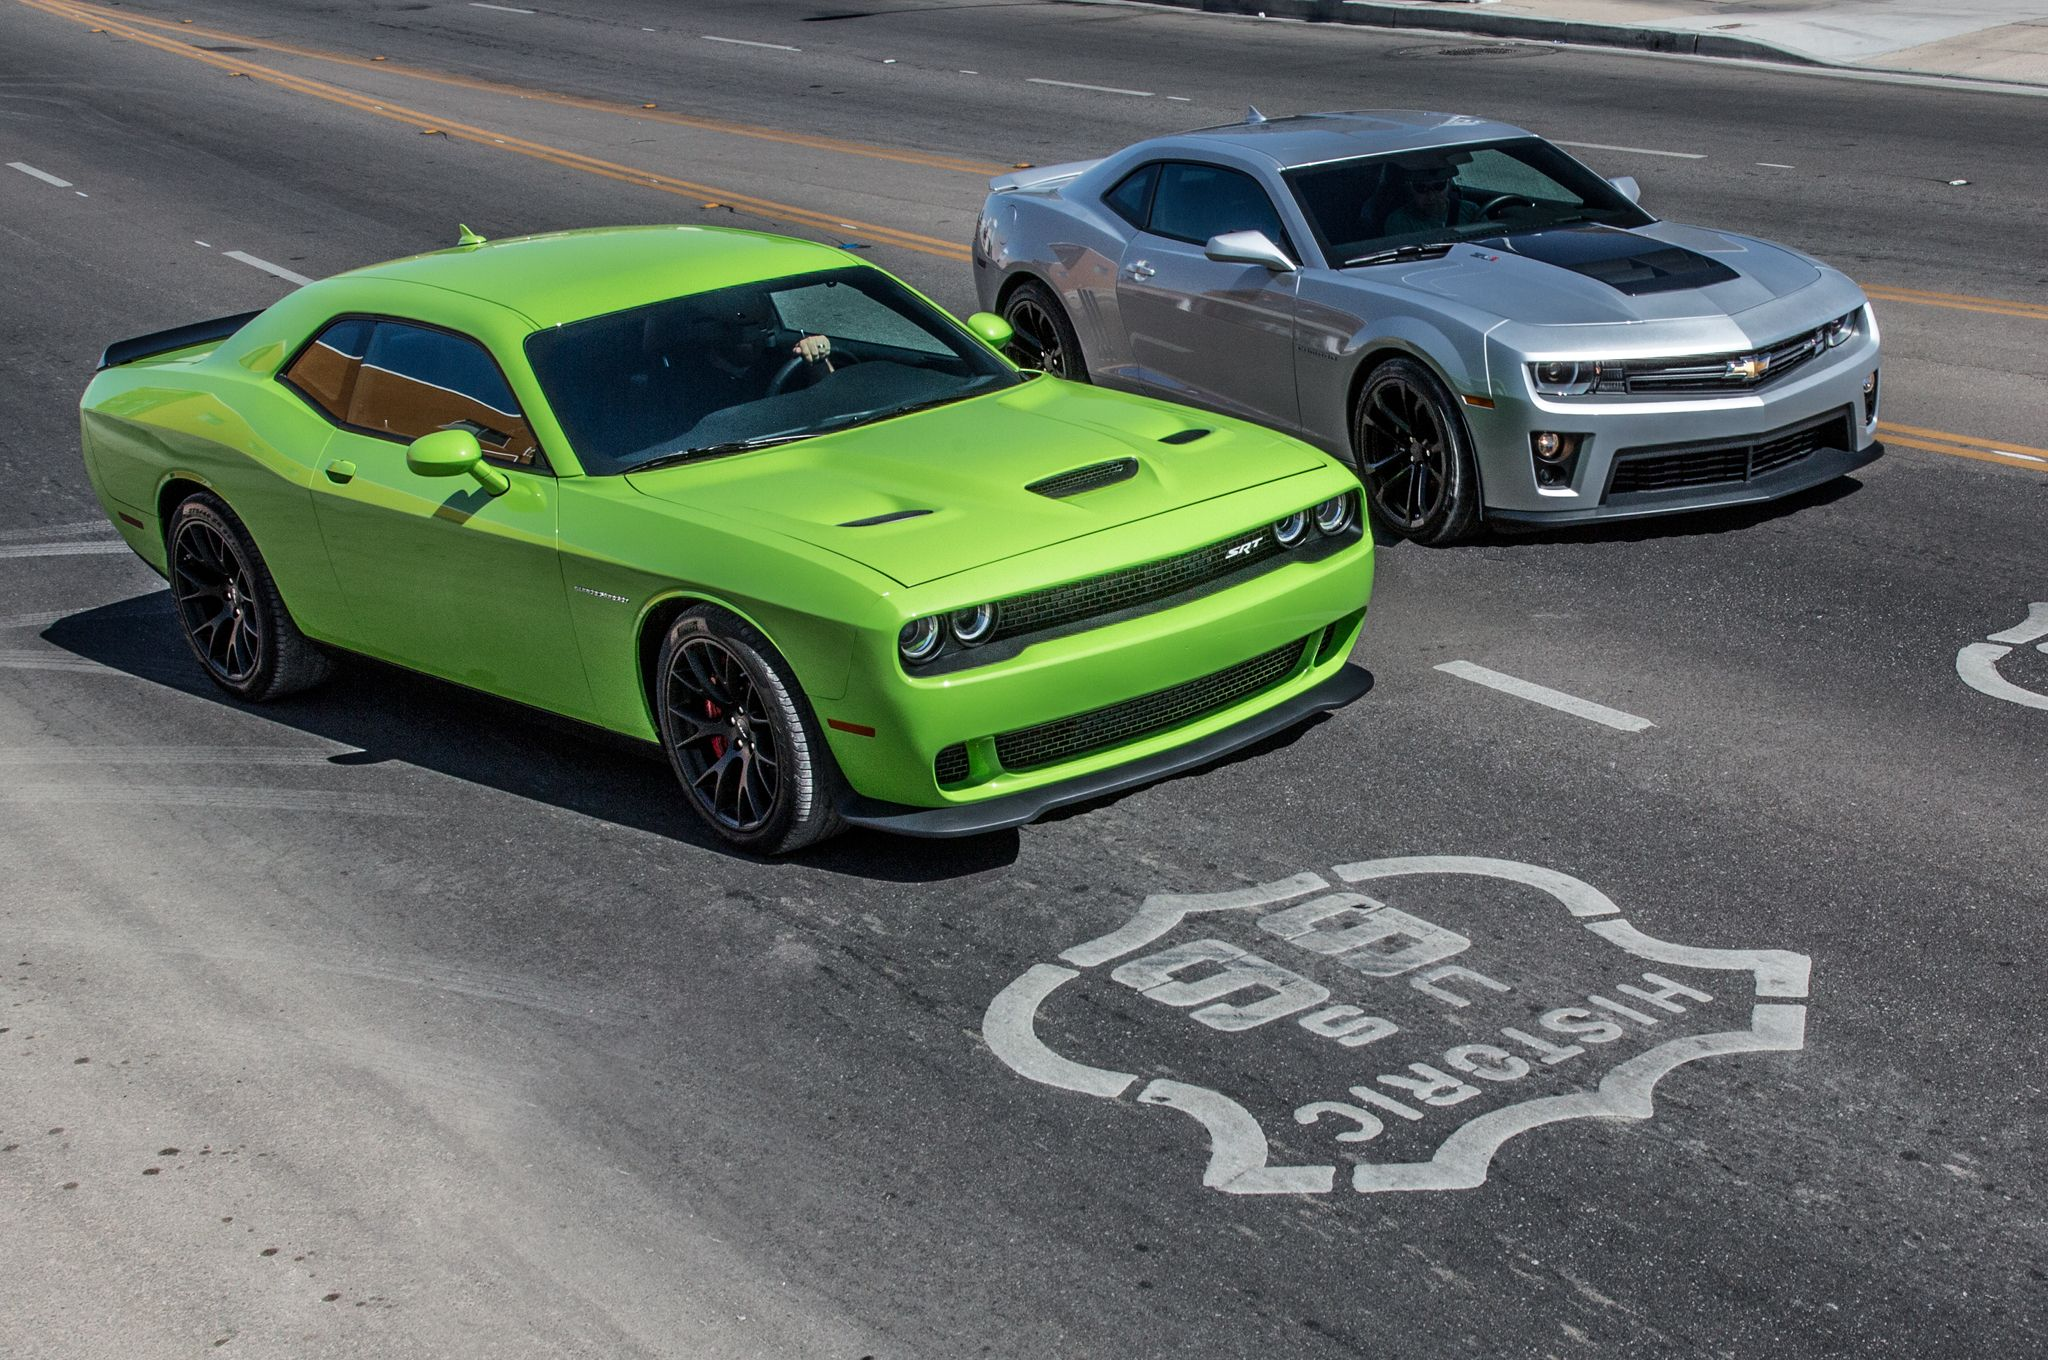 This is it motor trend is comparing the 2015 dodge challenger srt hellcat to the